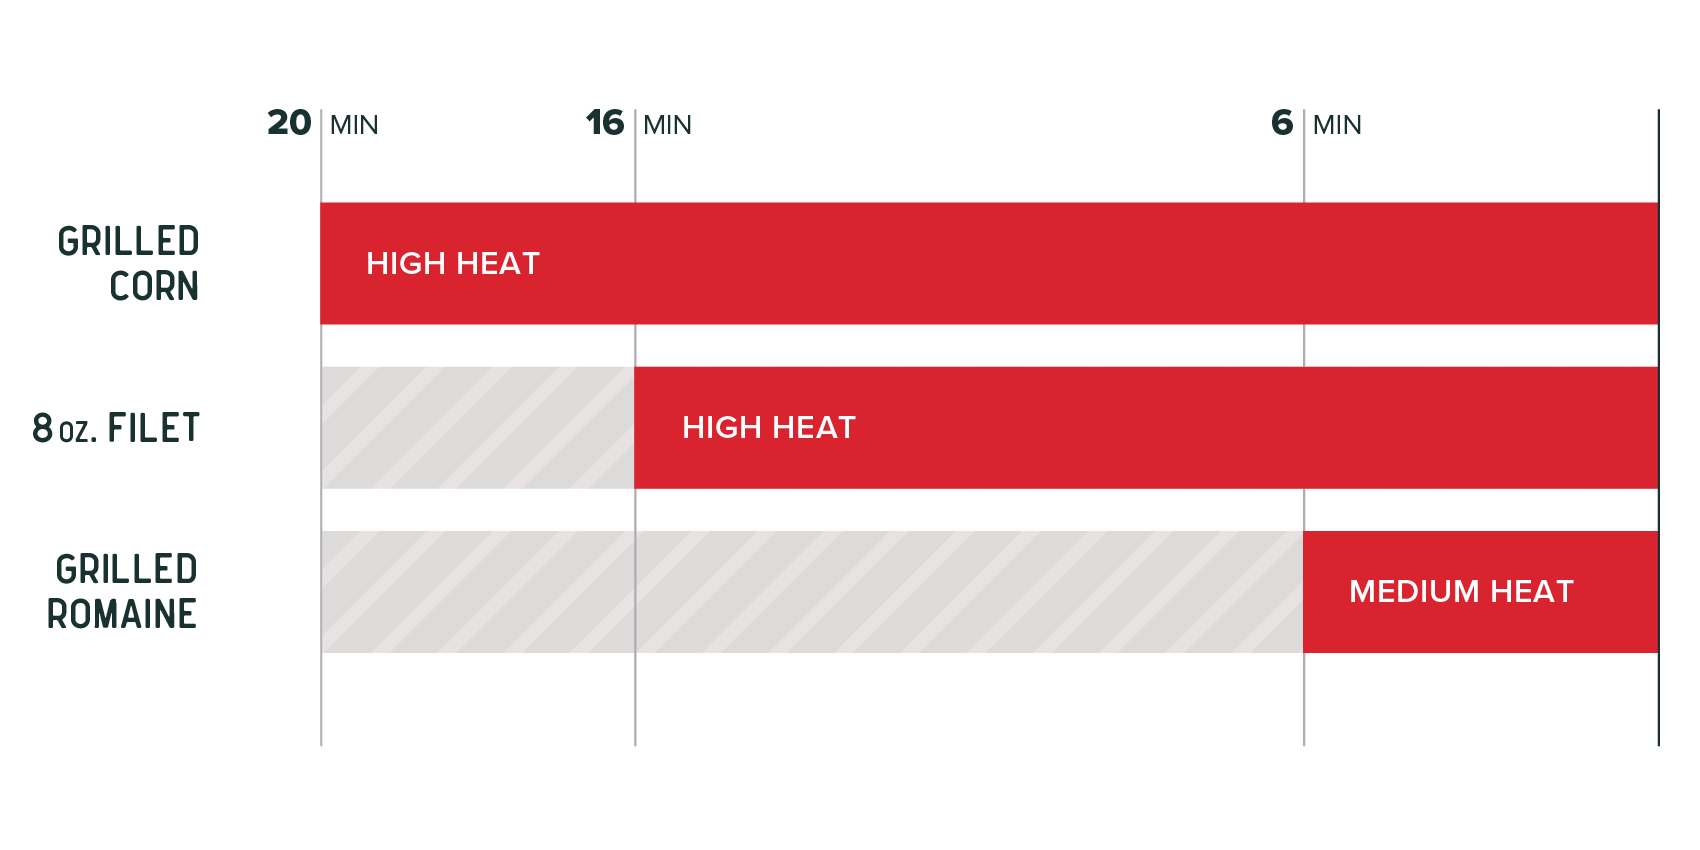 heat timing graph